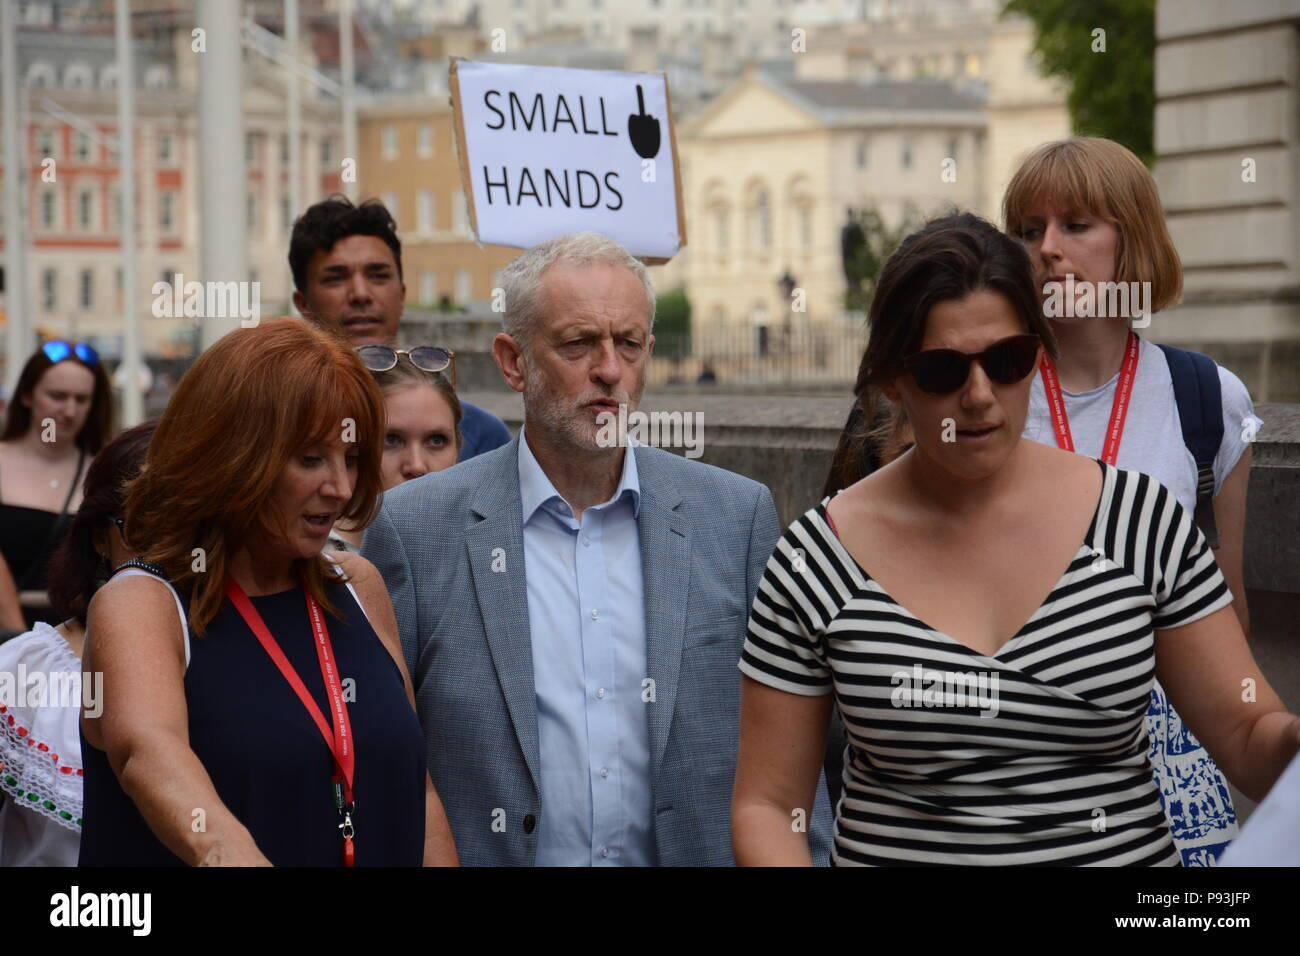 Anti-Trump March in Central London 13th July 2018 Stock Photo